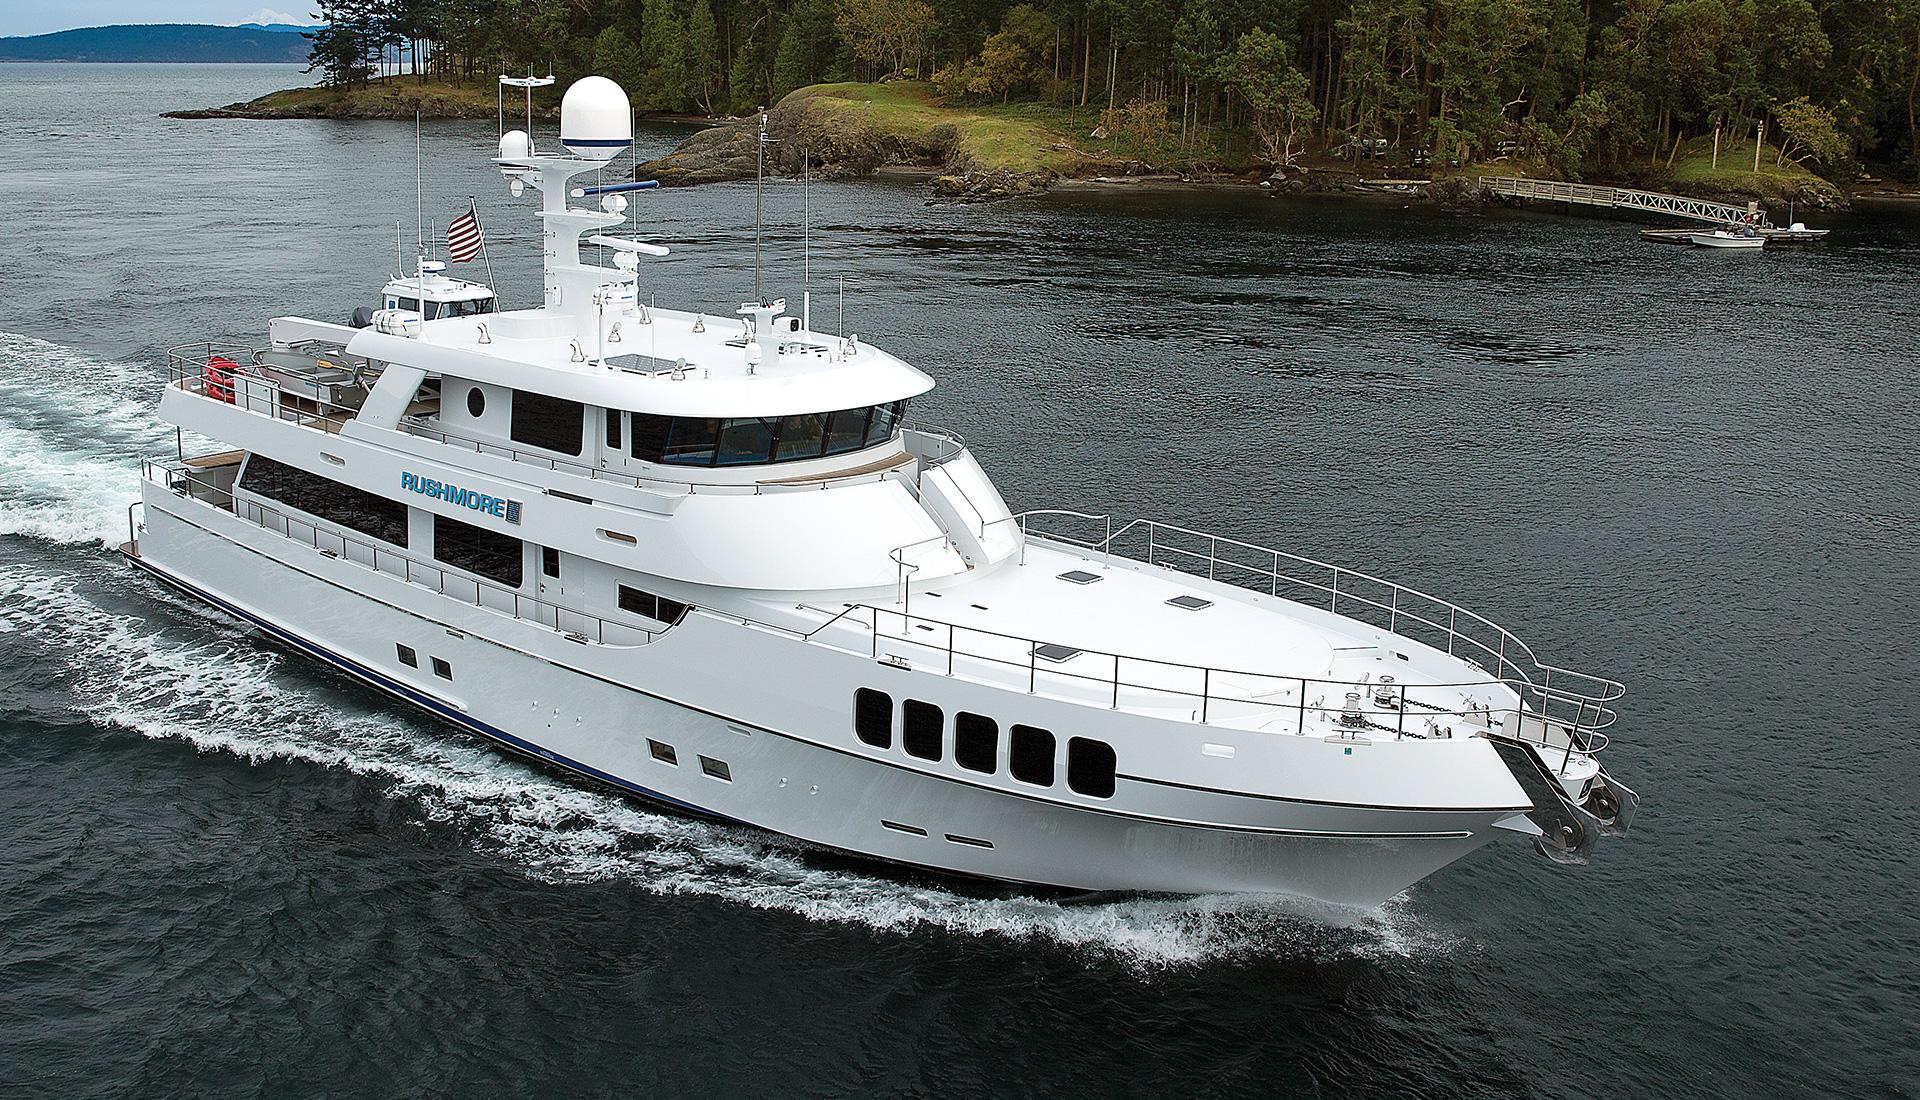 Nordlund 106' Yacht Rushmore Cruising Northwest Passages